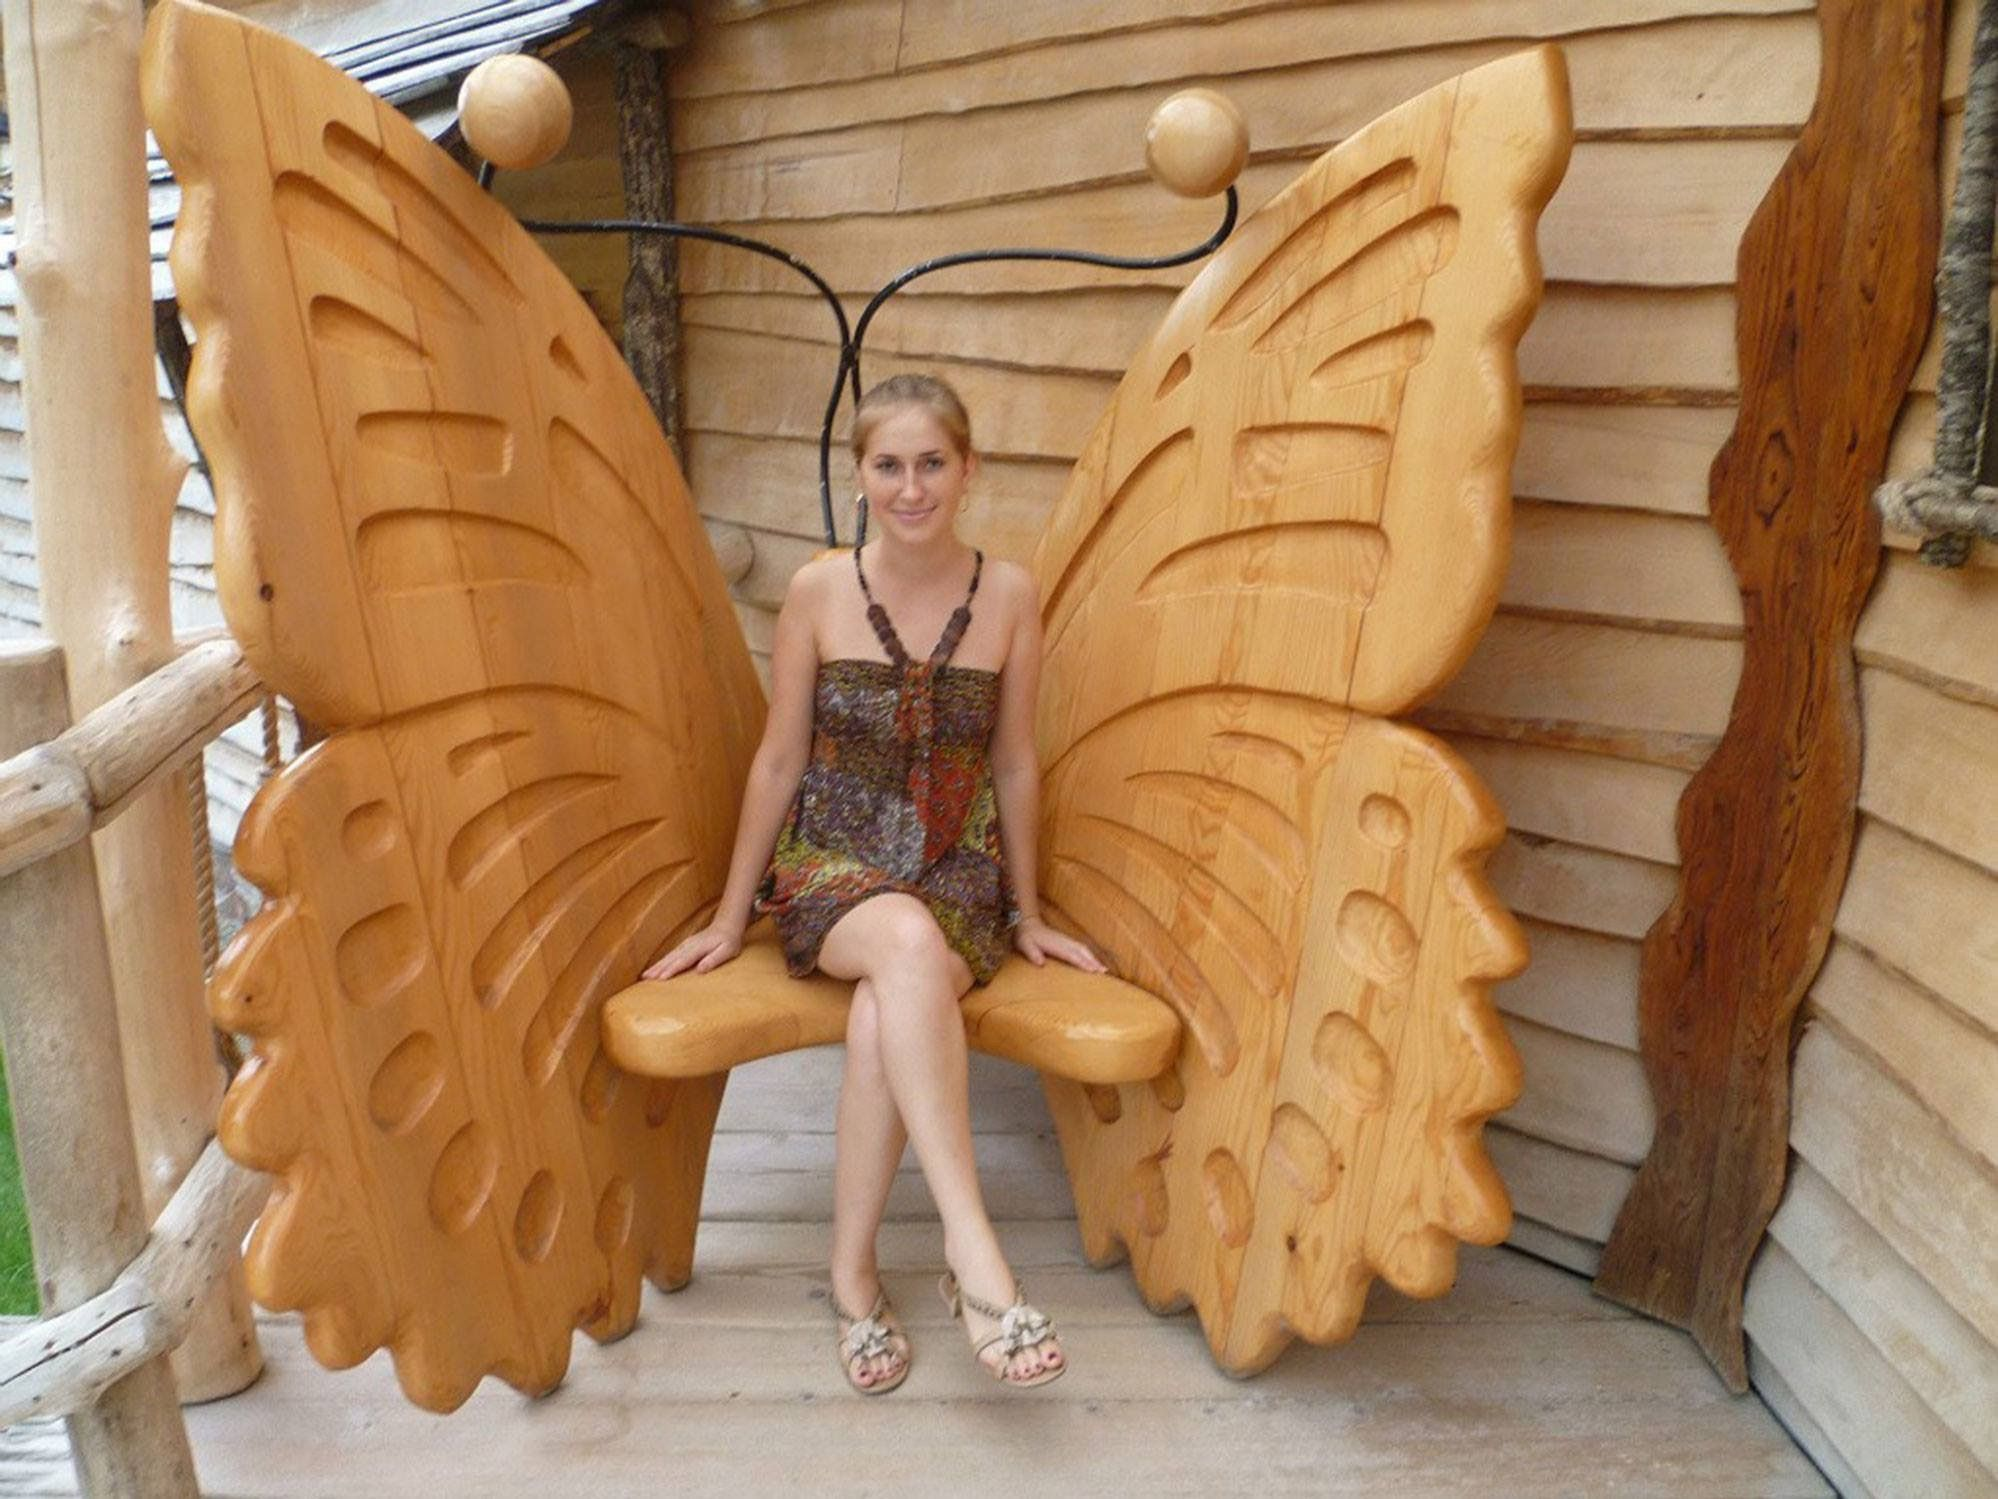 Carved wooden butterfly chair